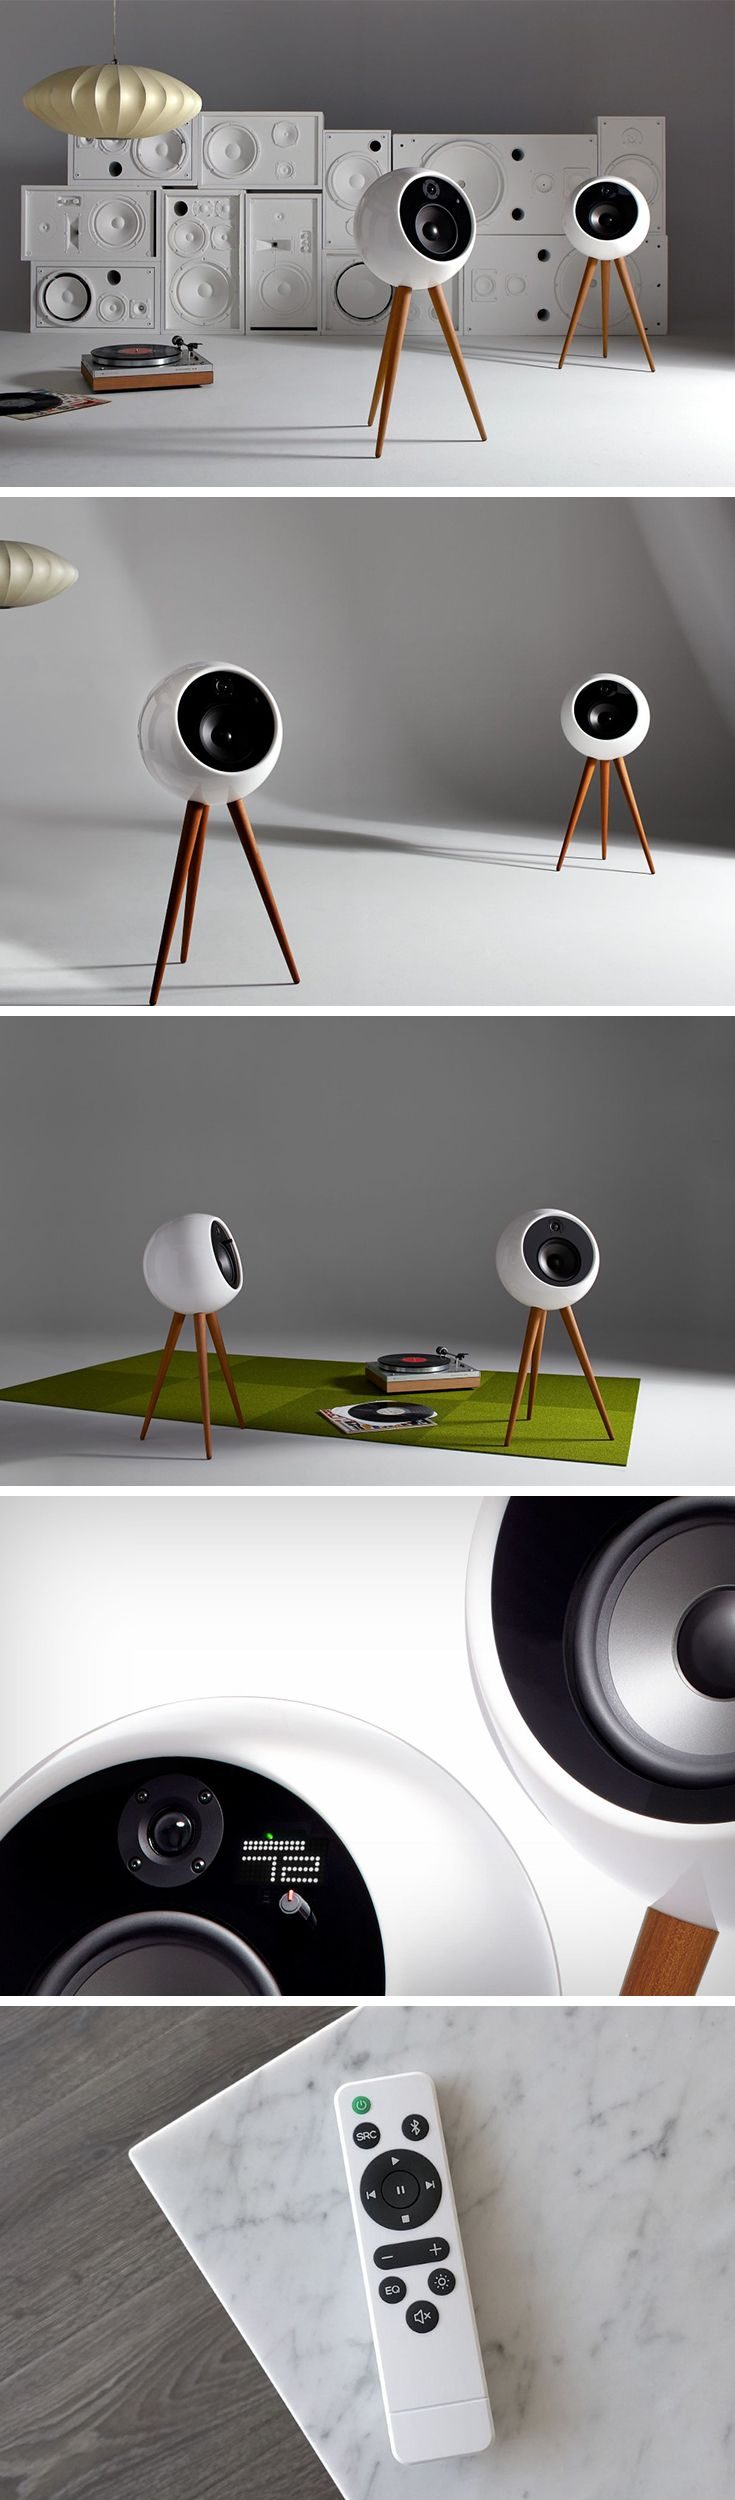 The Moonraker looks more like a variation of the Sputnik satellite than a speaker, and it's this very quality that makes it a wonderful centerpiece in homes. Designed with the flair you'd expect from high-end audio systems (Bang and Olufsen and such), the Moonraker is a white orb that sits on three wooden legs. BUY NOW!